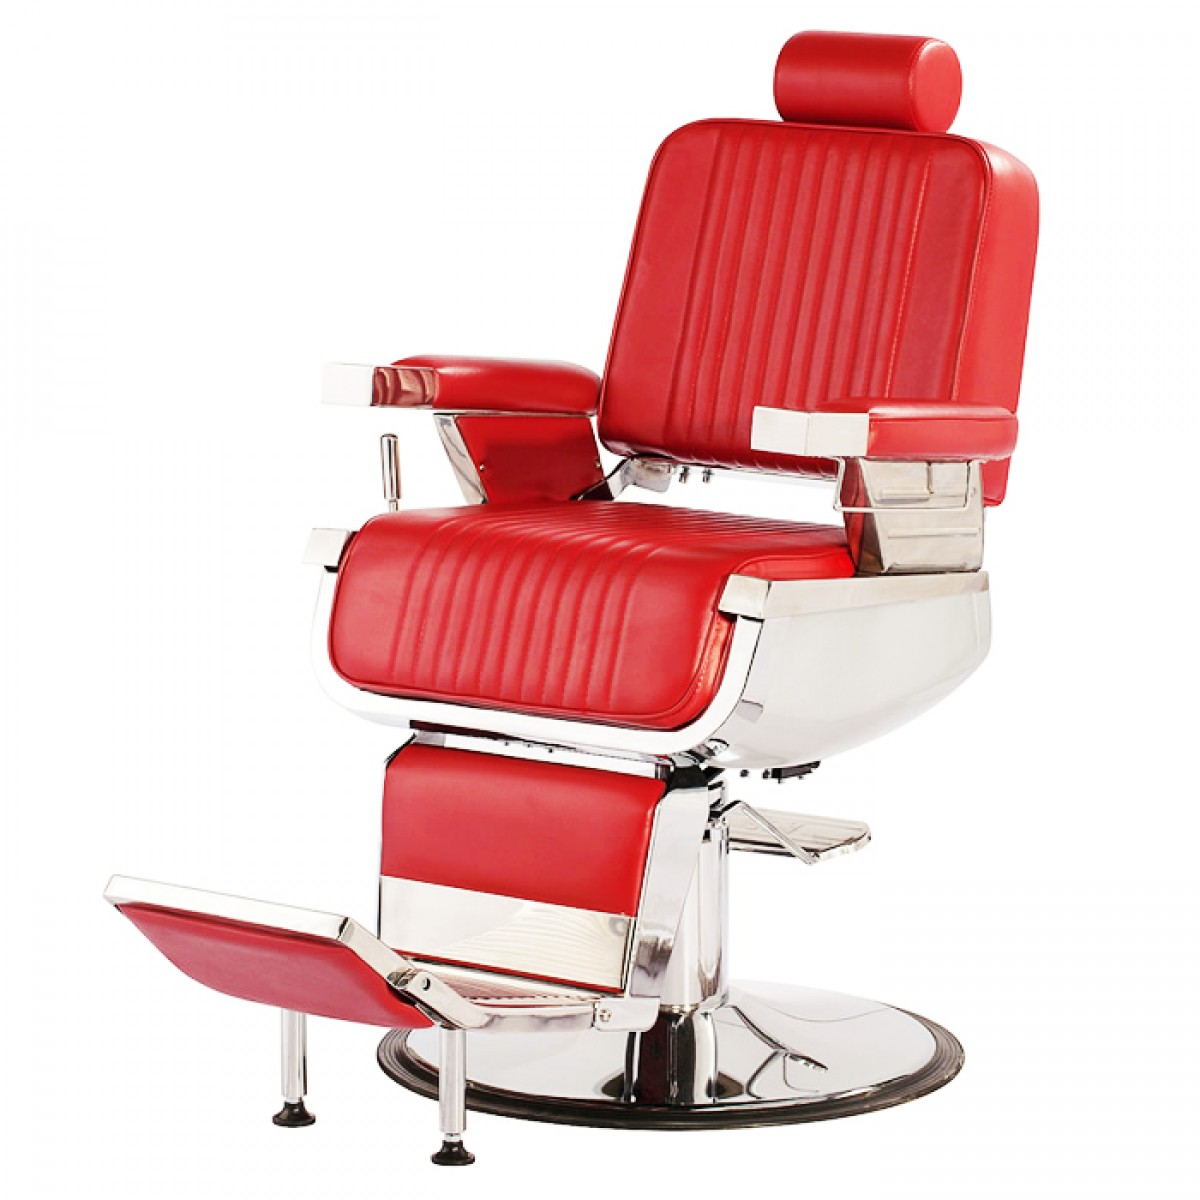 keller barber chair parts wwe steel hits constantine in soft chocolate brown chairs cardinal red free shipping